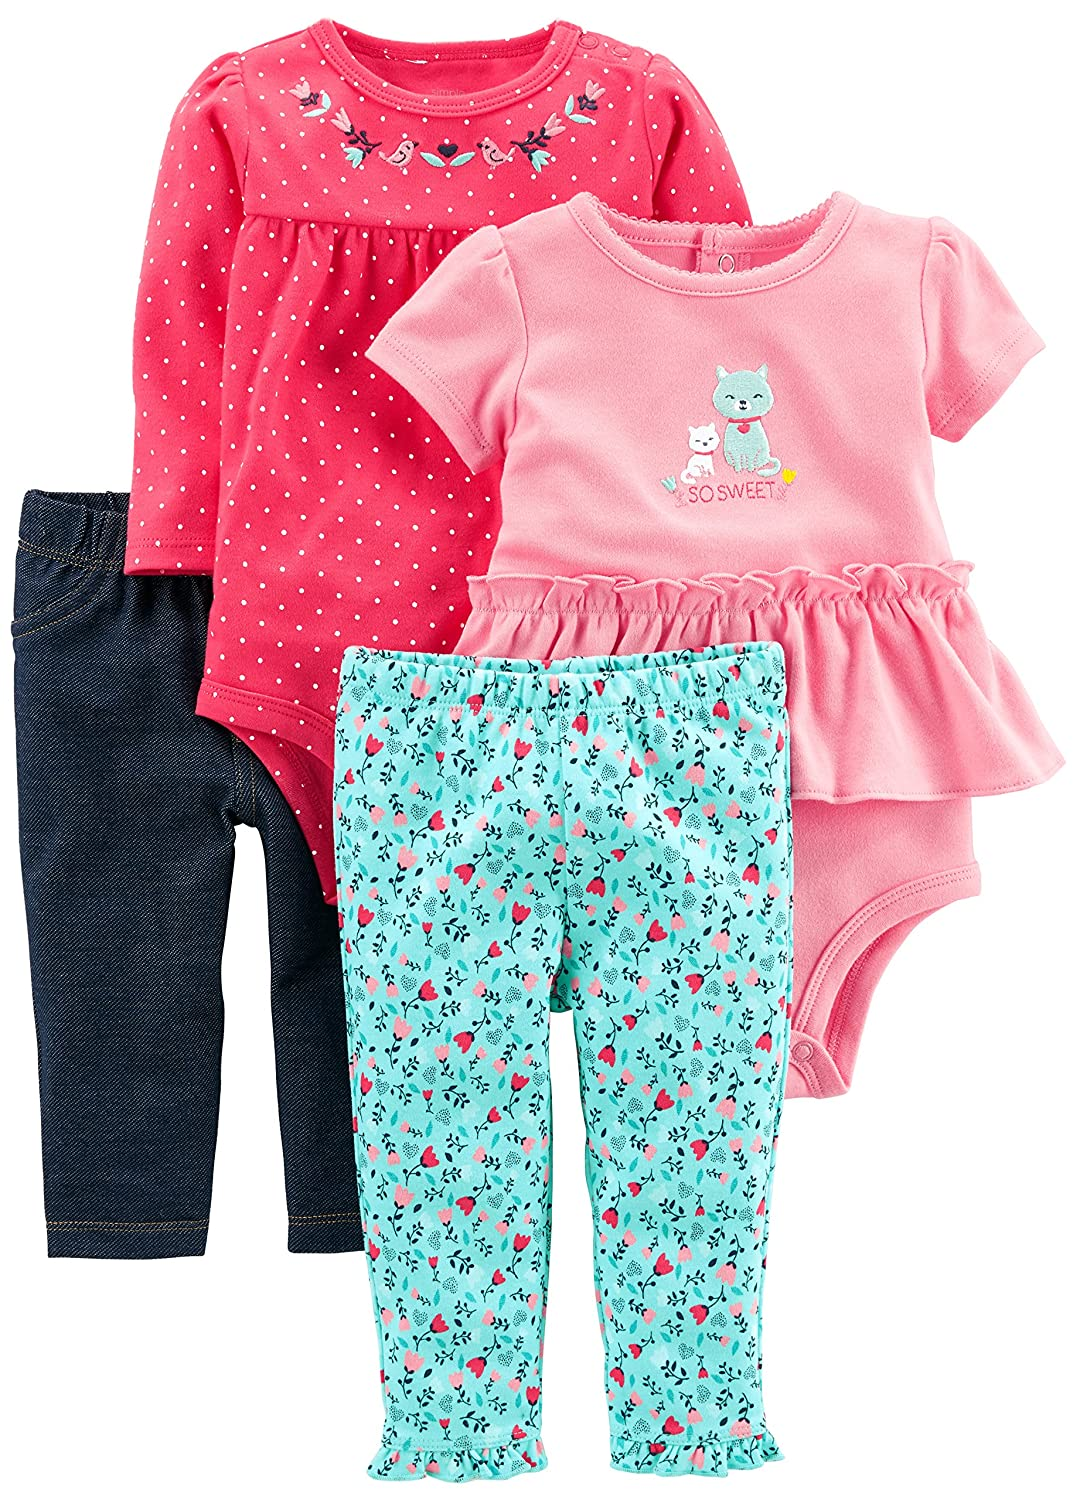 Simple Joys by Carter's Girls' 4-Piece Bodysuit and Pant Set Simple Joys by Carter's